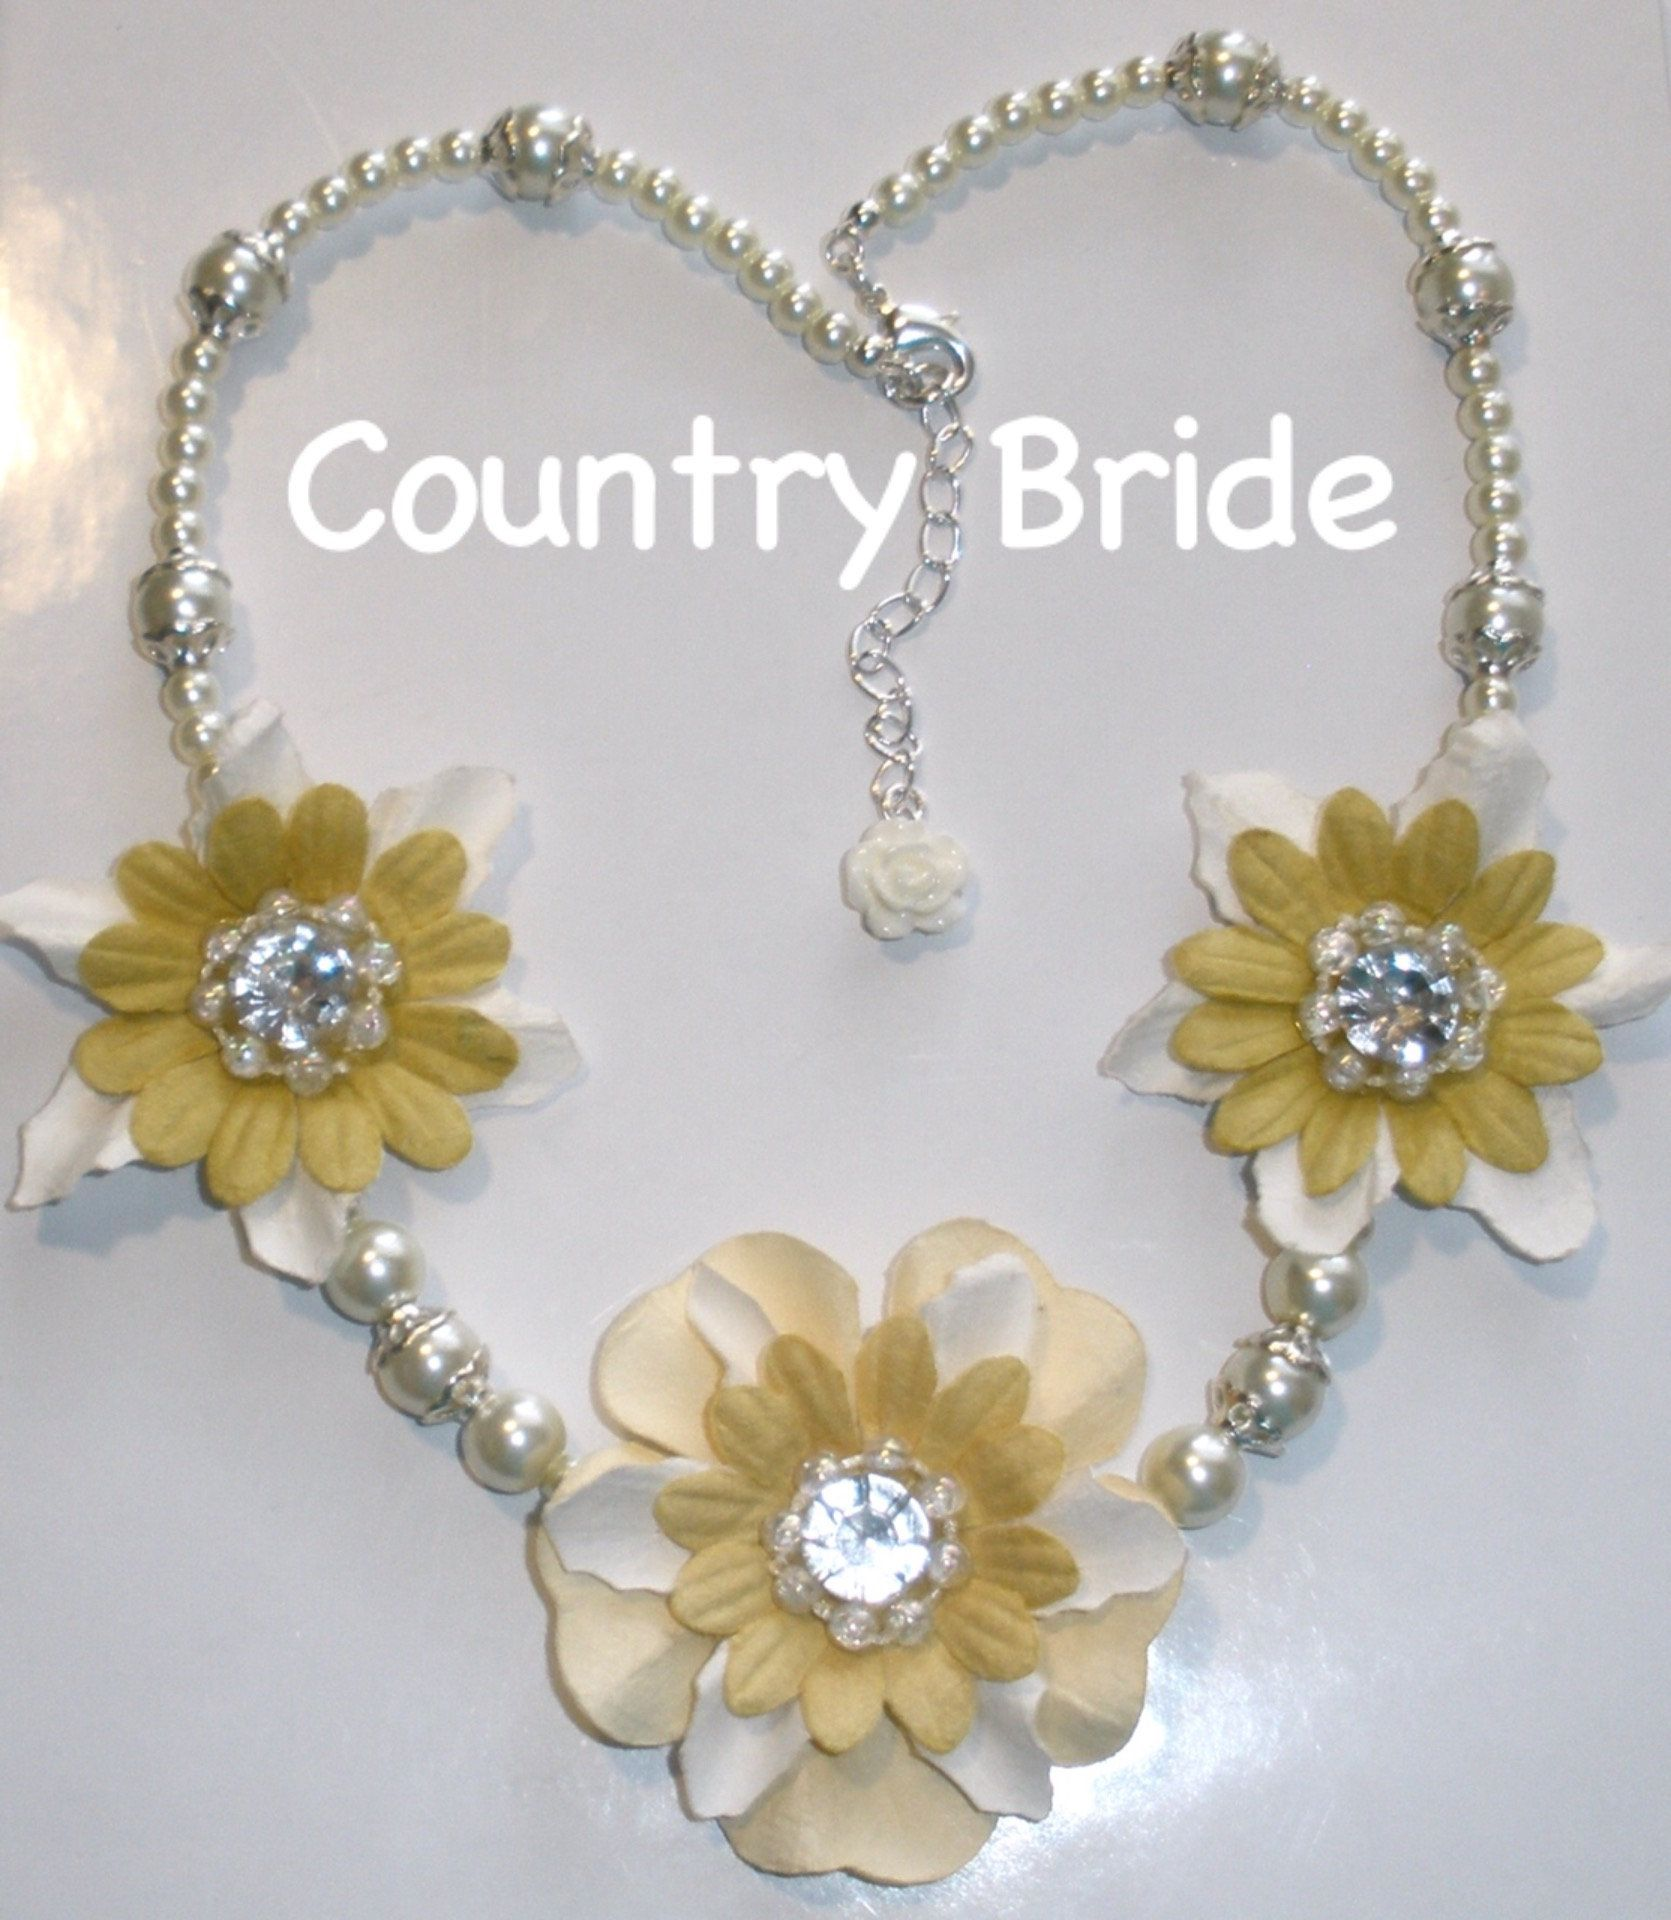 Country Bride Necklace Boho Chic Bride Necklace Ivory Pearl